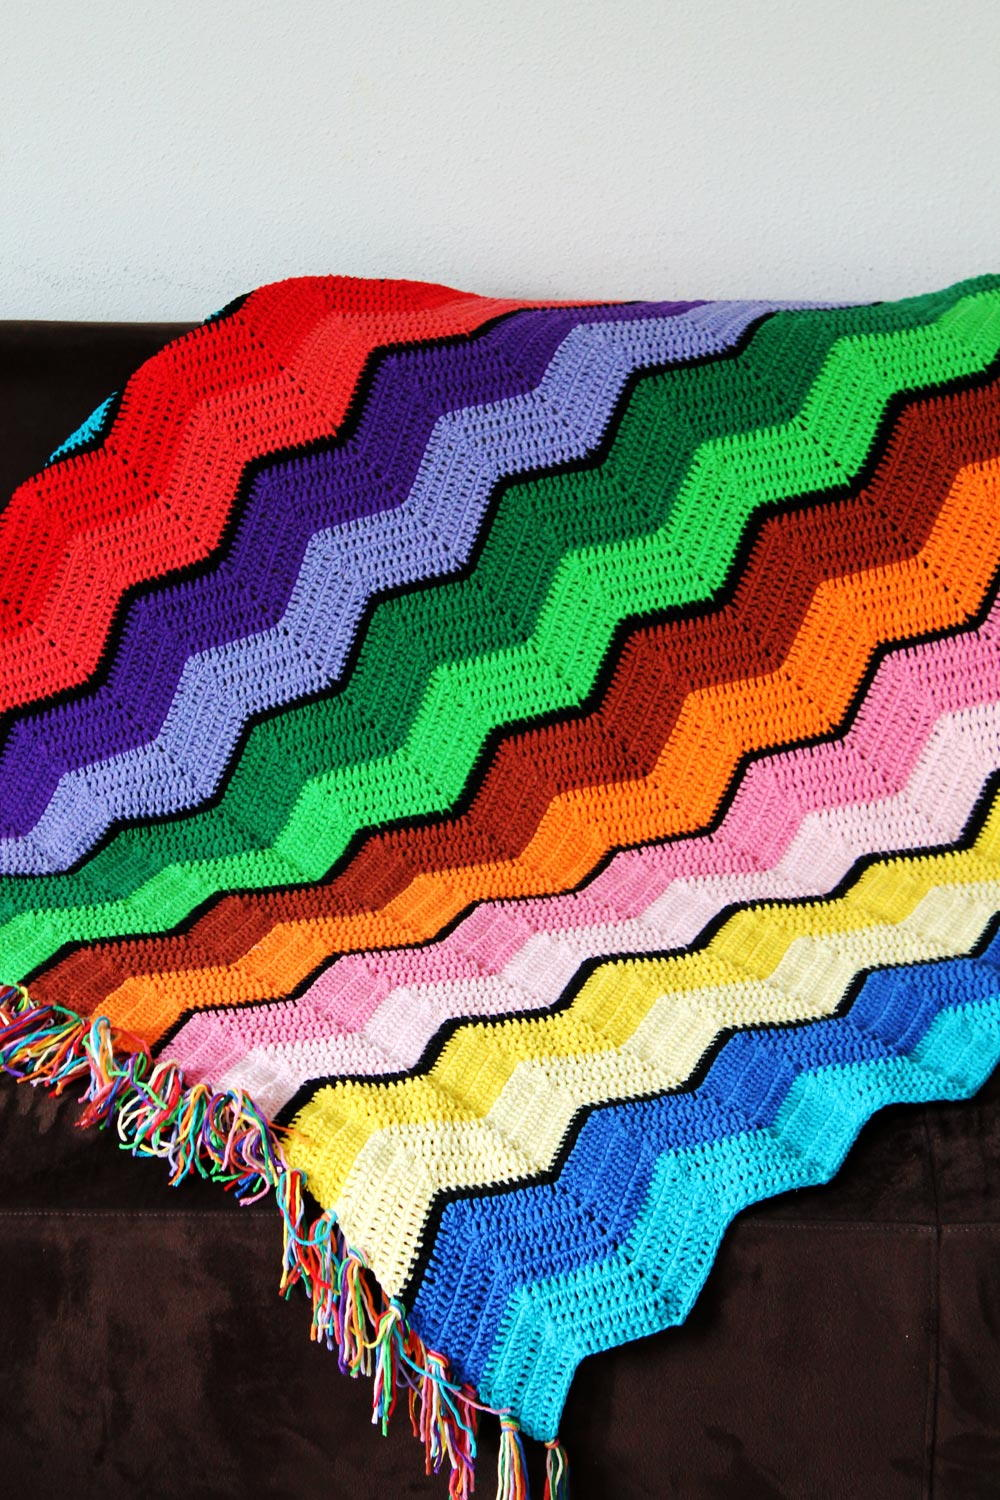 Crochet Ripple Afghan Pattern Instructions : 51 Free Crochet Blanket Patterns for Beginners ...